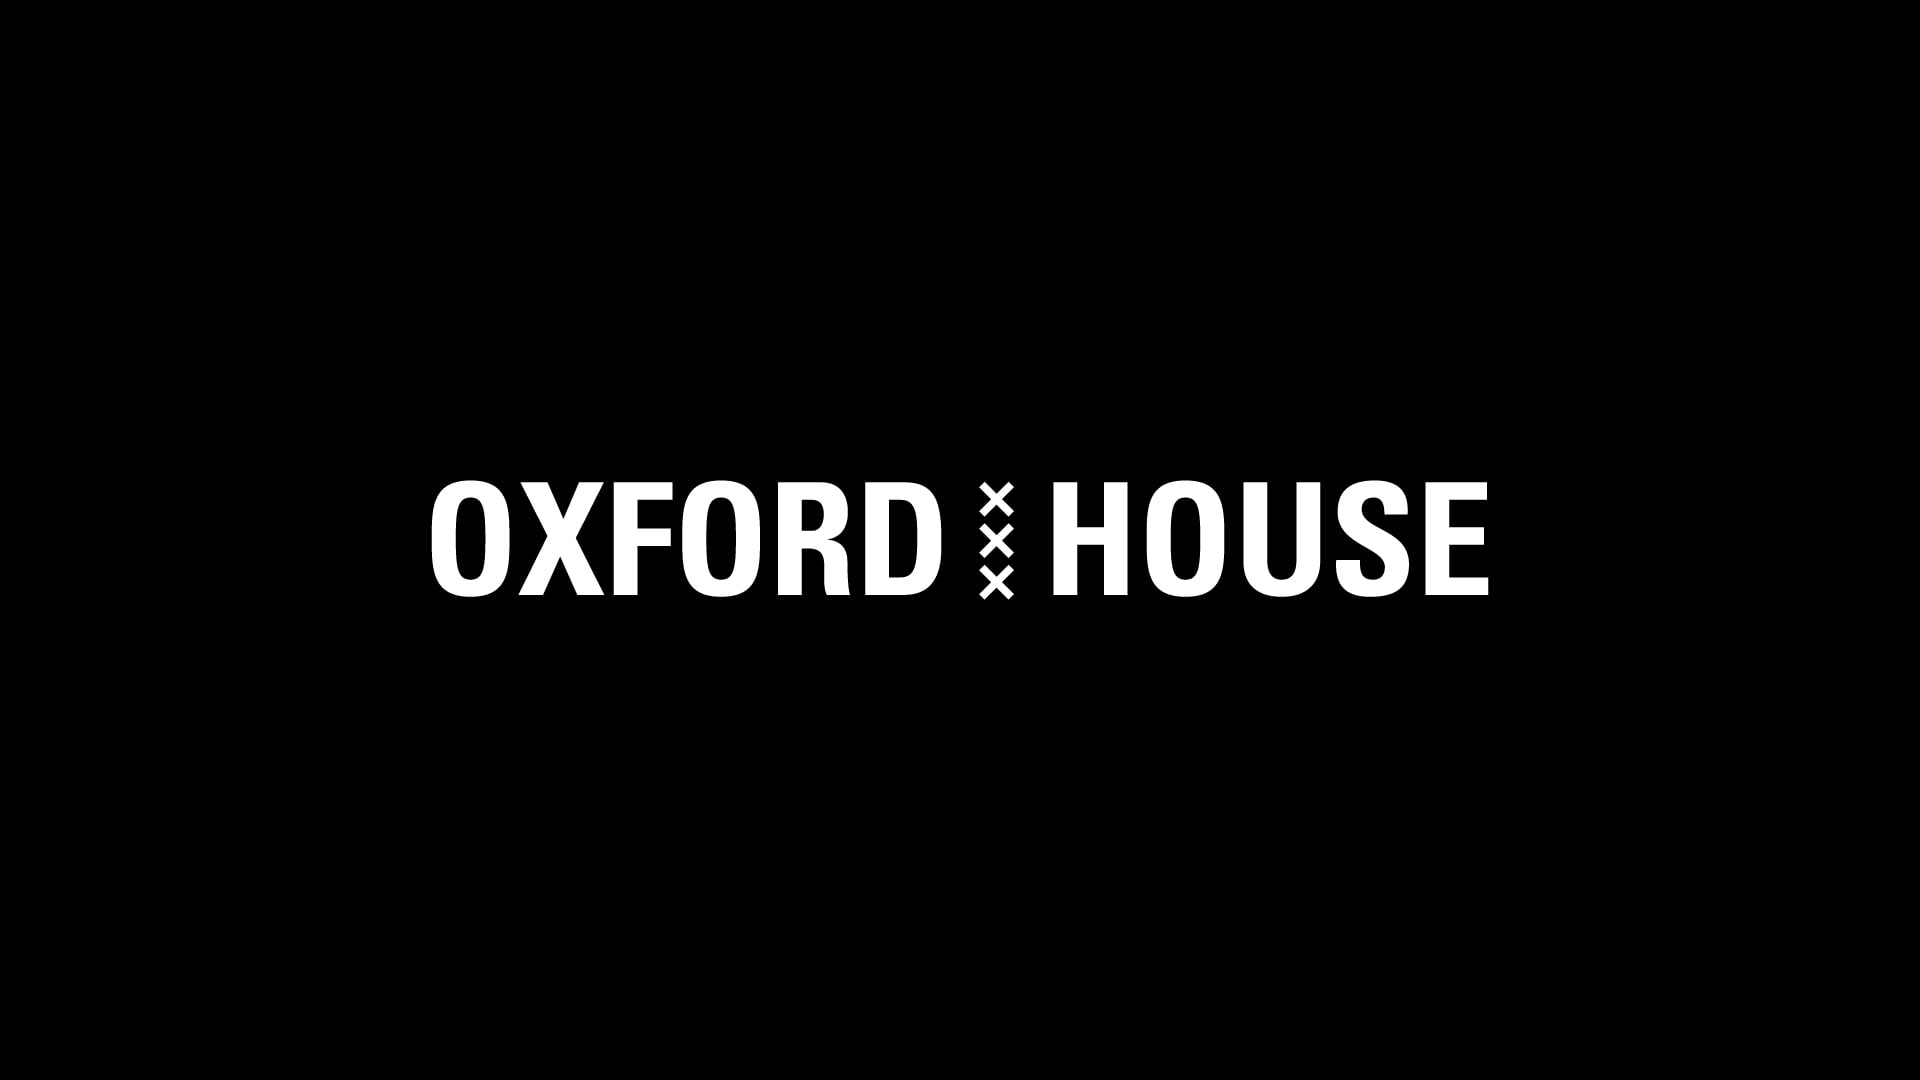 CHECK OXFORDHOUSE.NL FOR OUR LATEST PROJECTS